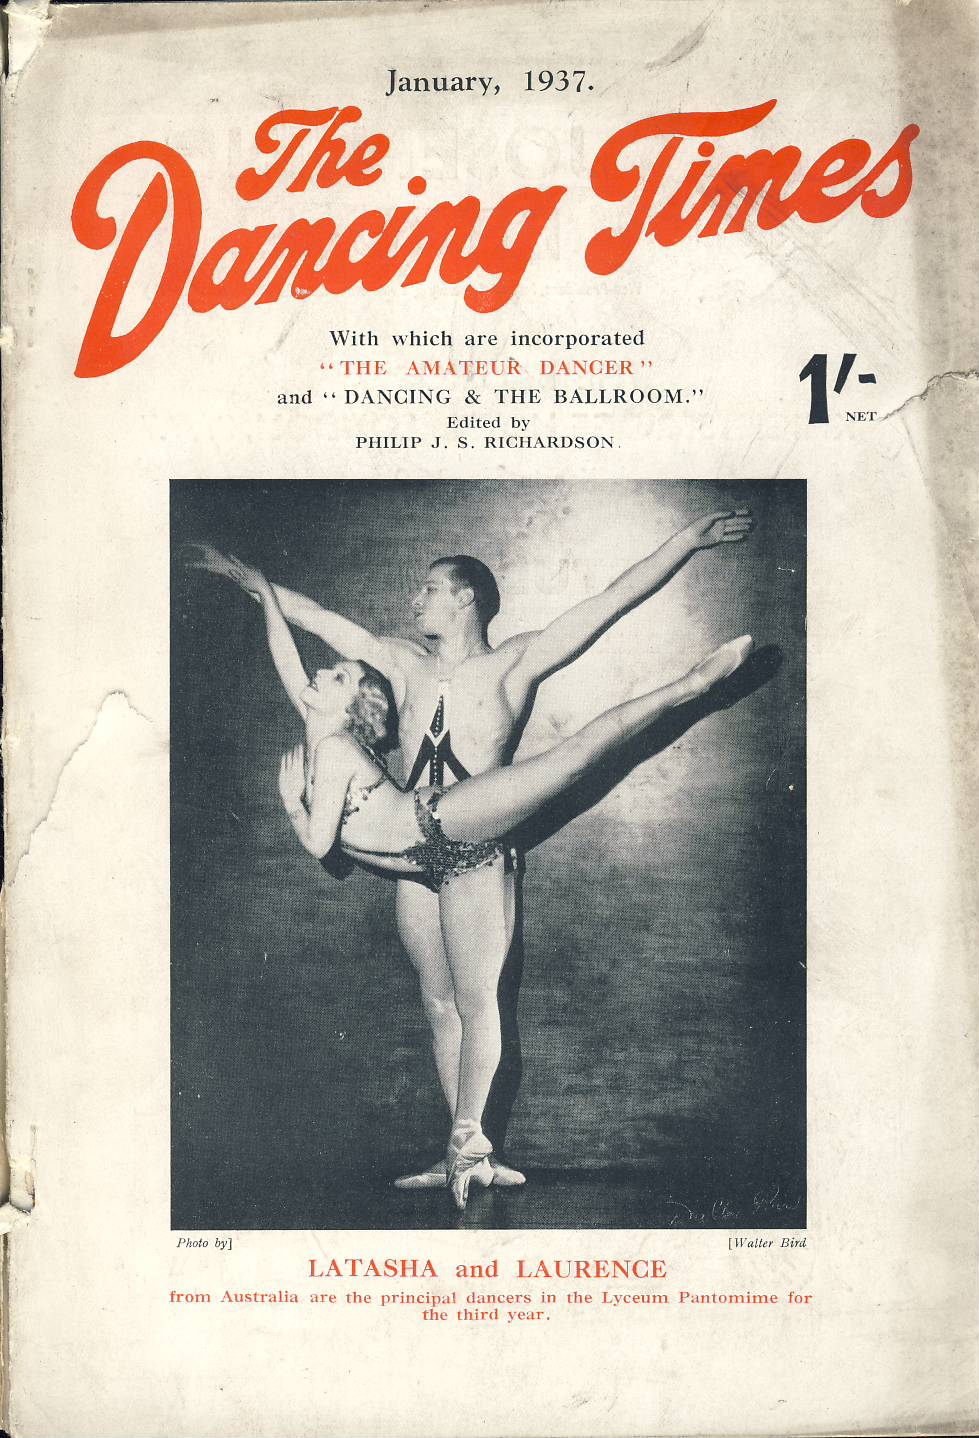 January 1937 The Dancing Times magazine LATASHA AND LAURENCE from Australia Alicia Markova and Anton Dolin Mother Goose Pantomime London Hippodrome photo on inside front cover. A review of dancing in its many phases - containing articles and photos. Some vintage adverts for dancing schools. This is a vintage magazine. Text and photos clean and bright inside. The covers are badly marked with scuffs and tears to spines. Staples rusting so cover coming away from text. Please read the full description and see photo.